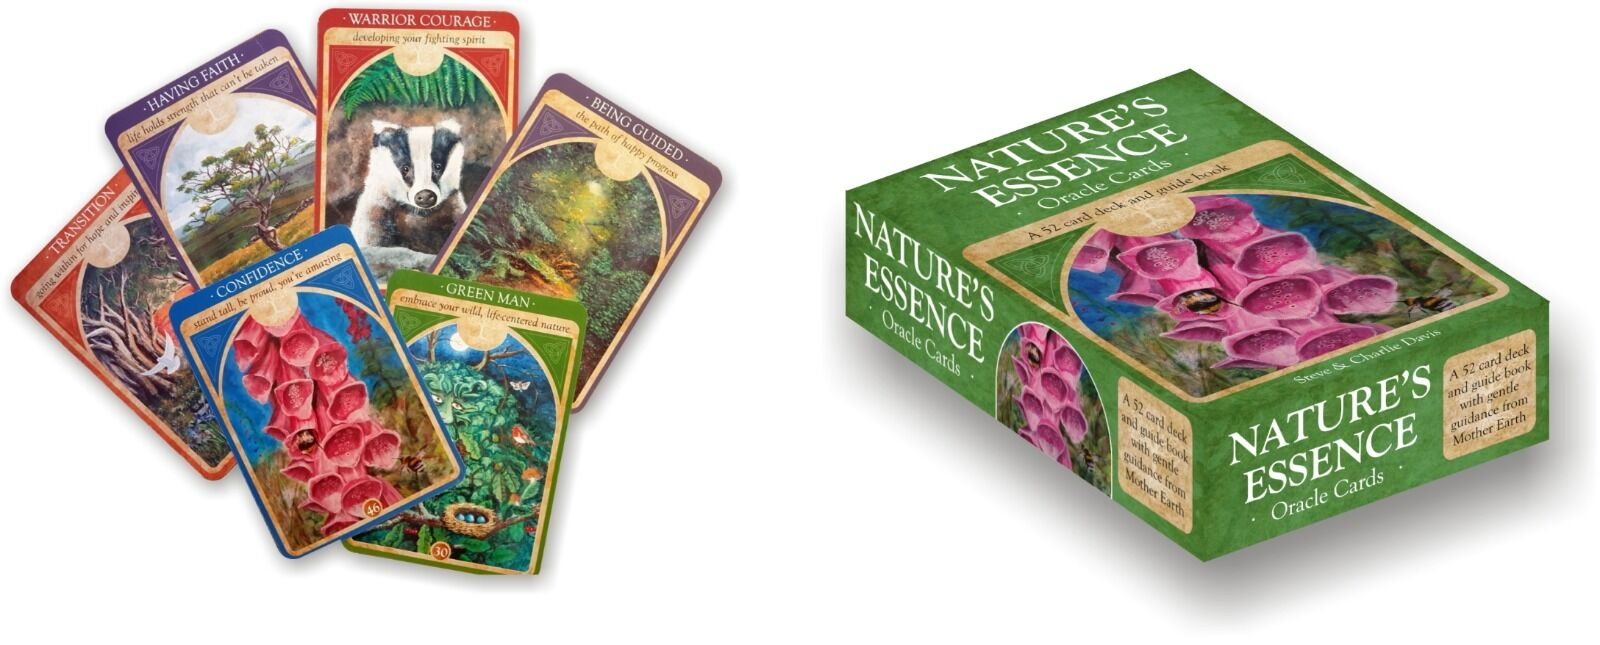 Natures Essence Cards and Box